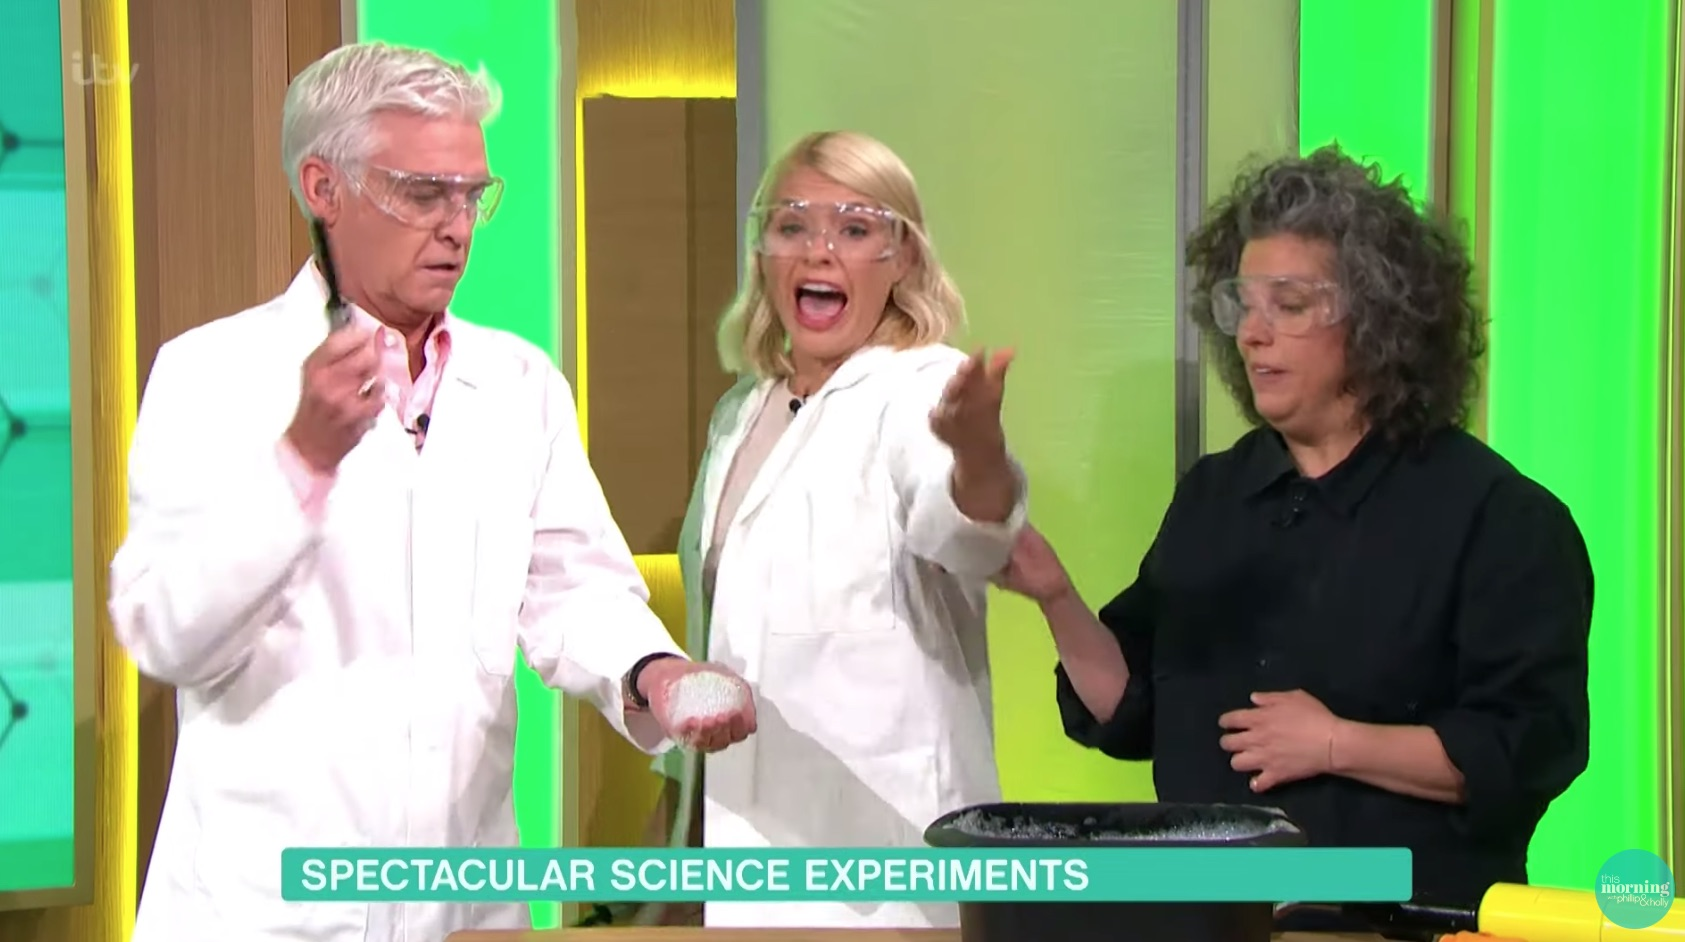 Holly Willoughby screams during science experiment on This Morning